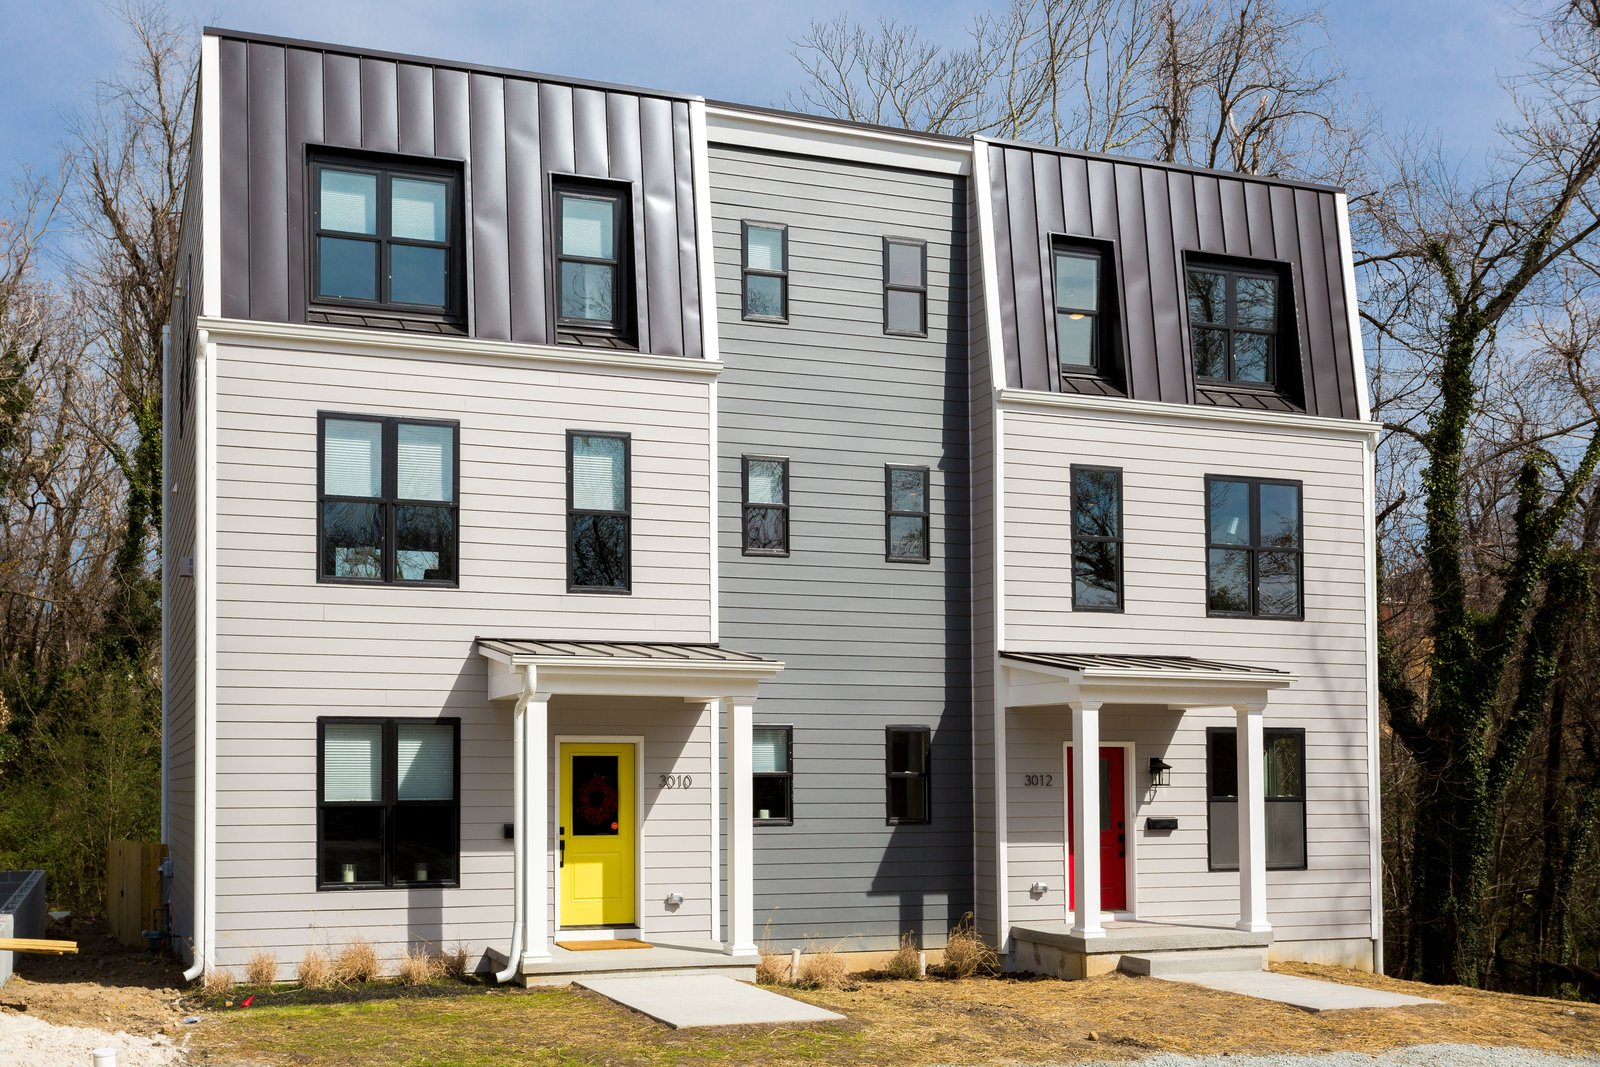 Photo 5 of 11 in Slim Is in For These 10 Skinny Homes from sugar bottom RVA | urban infill on libby hill